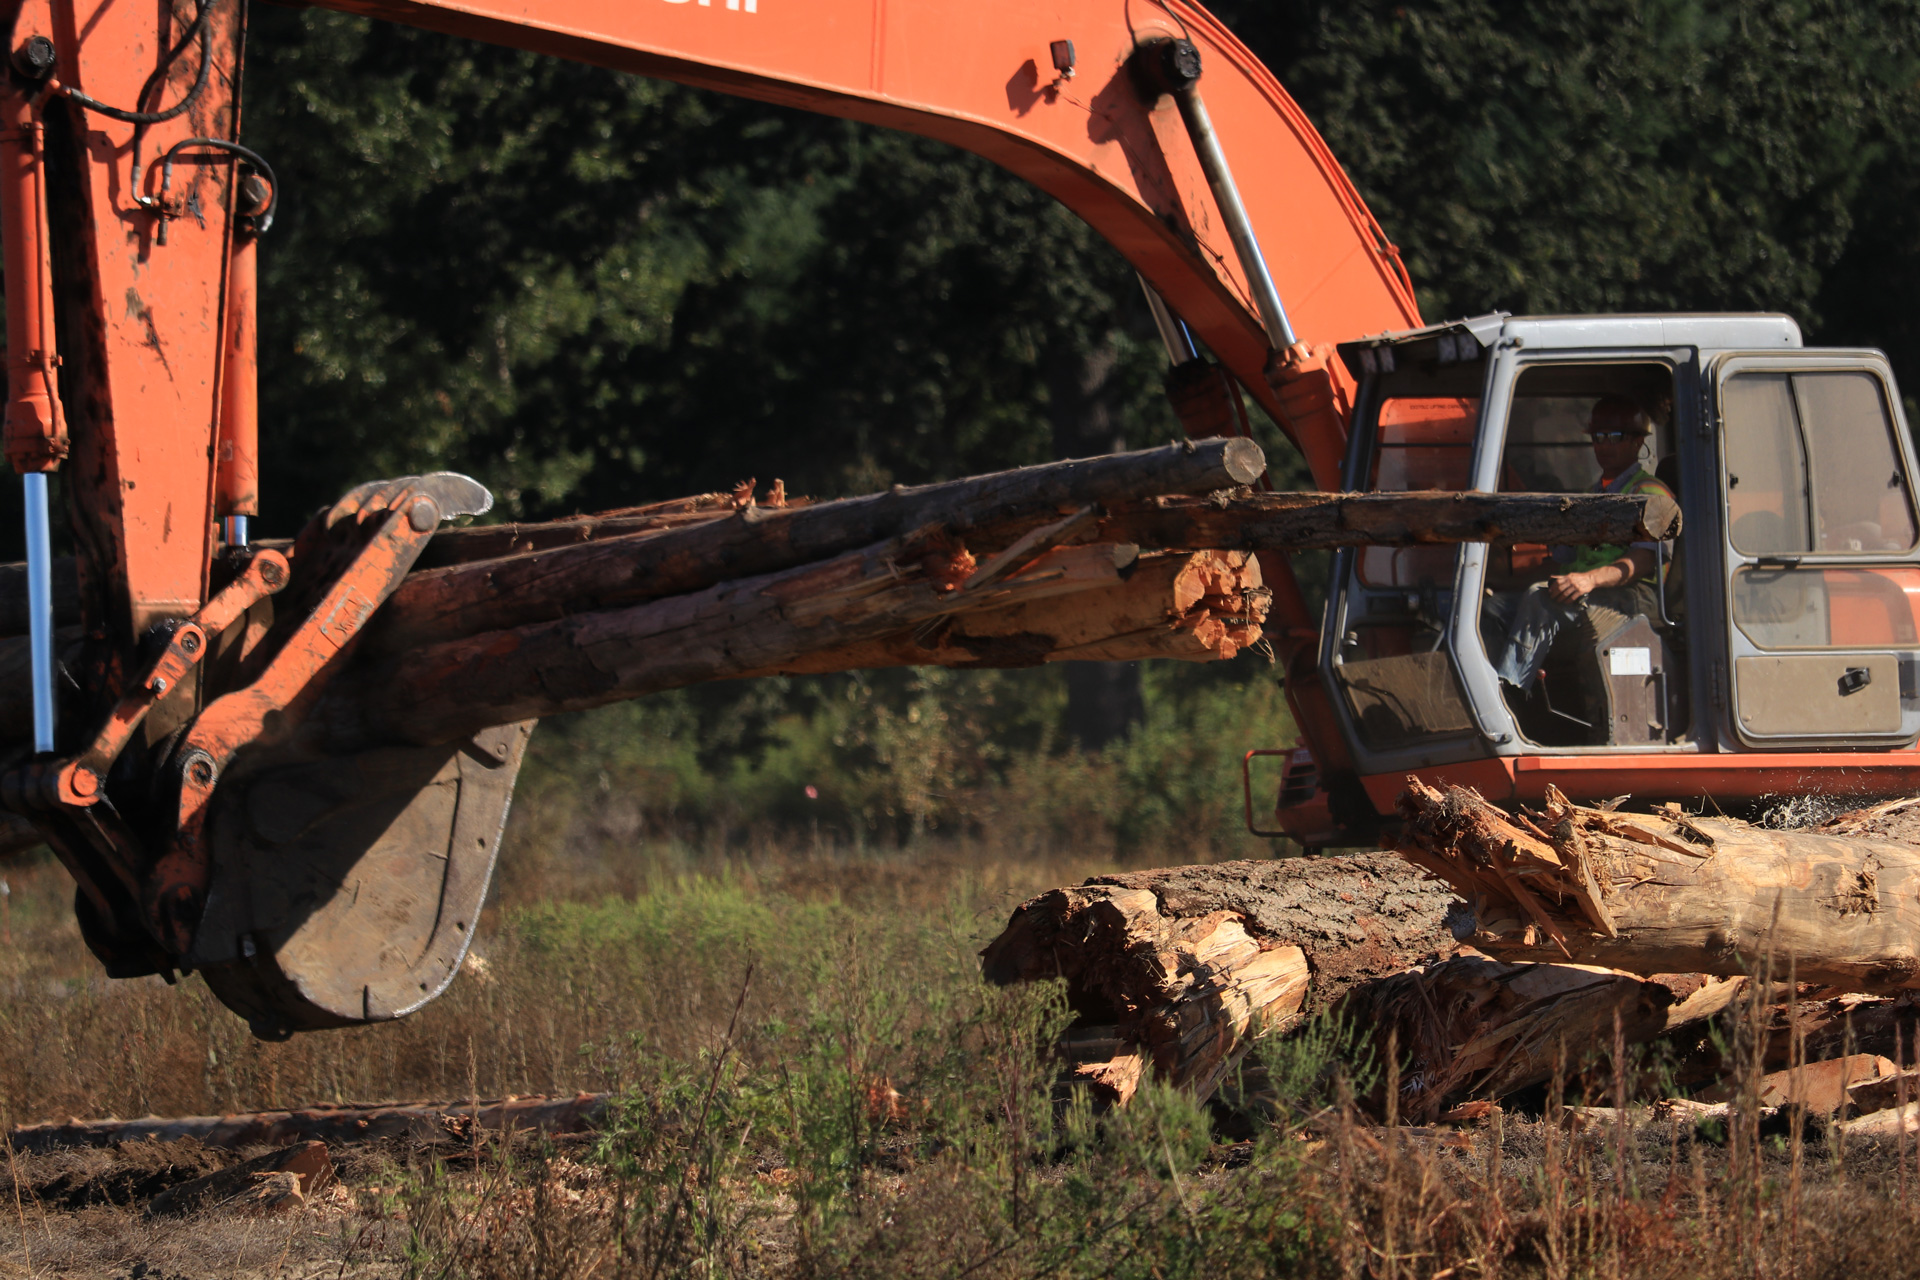 Heavy equipment will be placing large woody debris in the floodplain restoration area between September 3rd and October 15th.